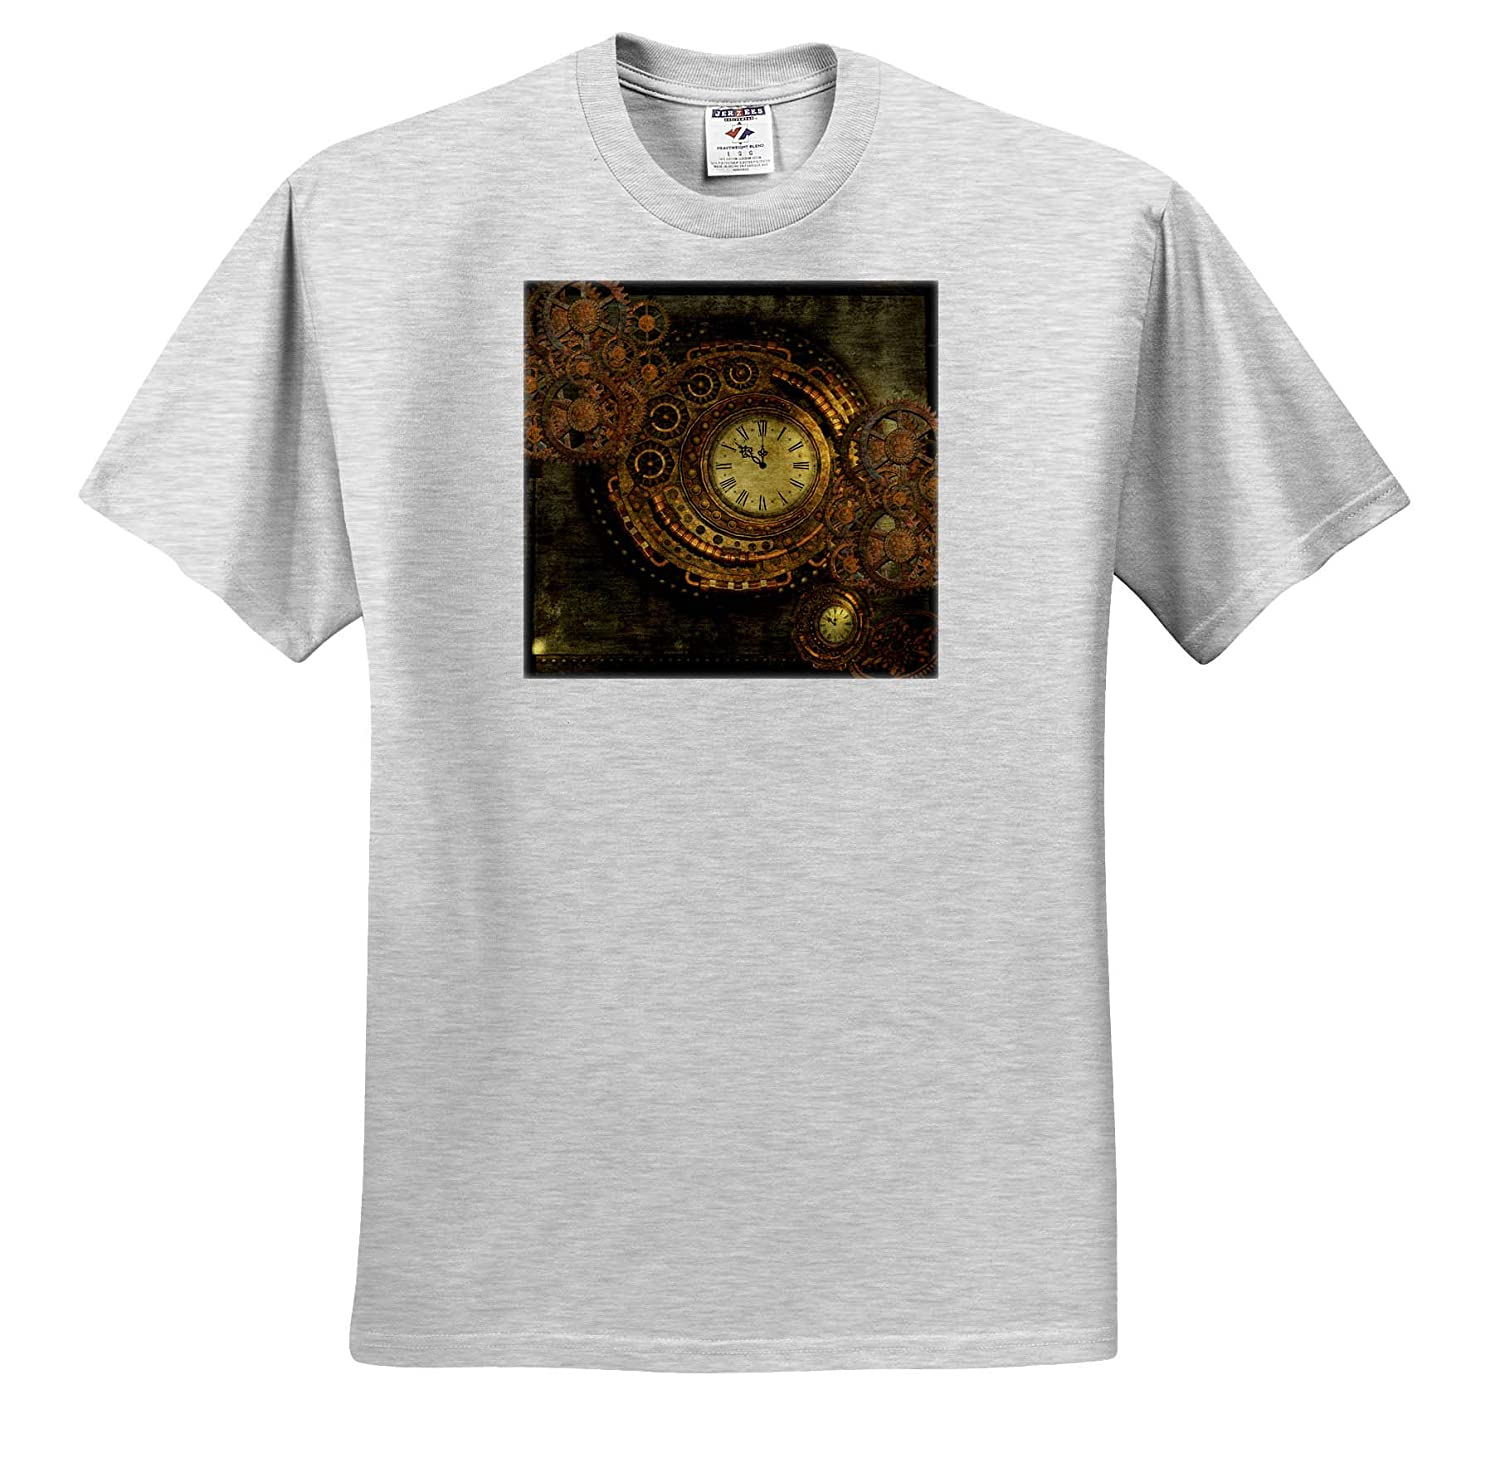 3dRose Heike K/öhnen Design Steampunk Steampunk Design Golden Colors T-Shirts Wonderful Clockwork